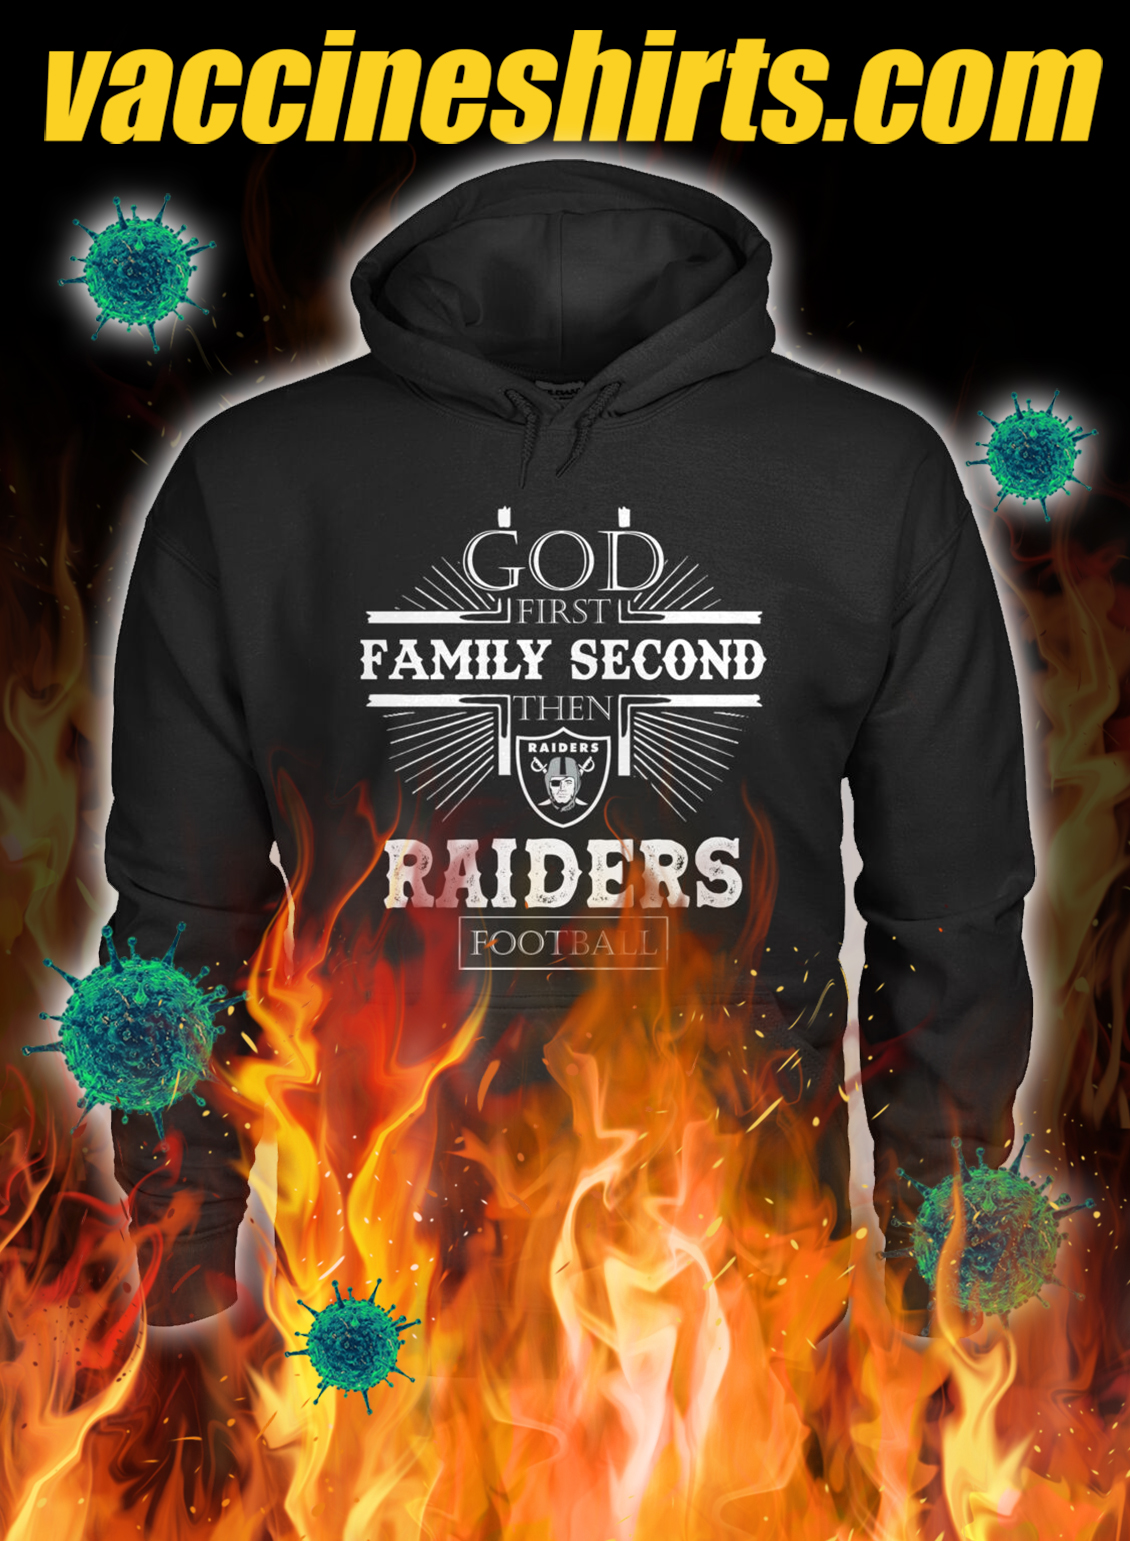 God first family second then raiders football hoodie